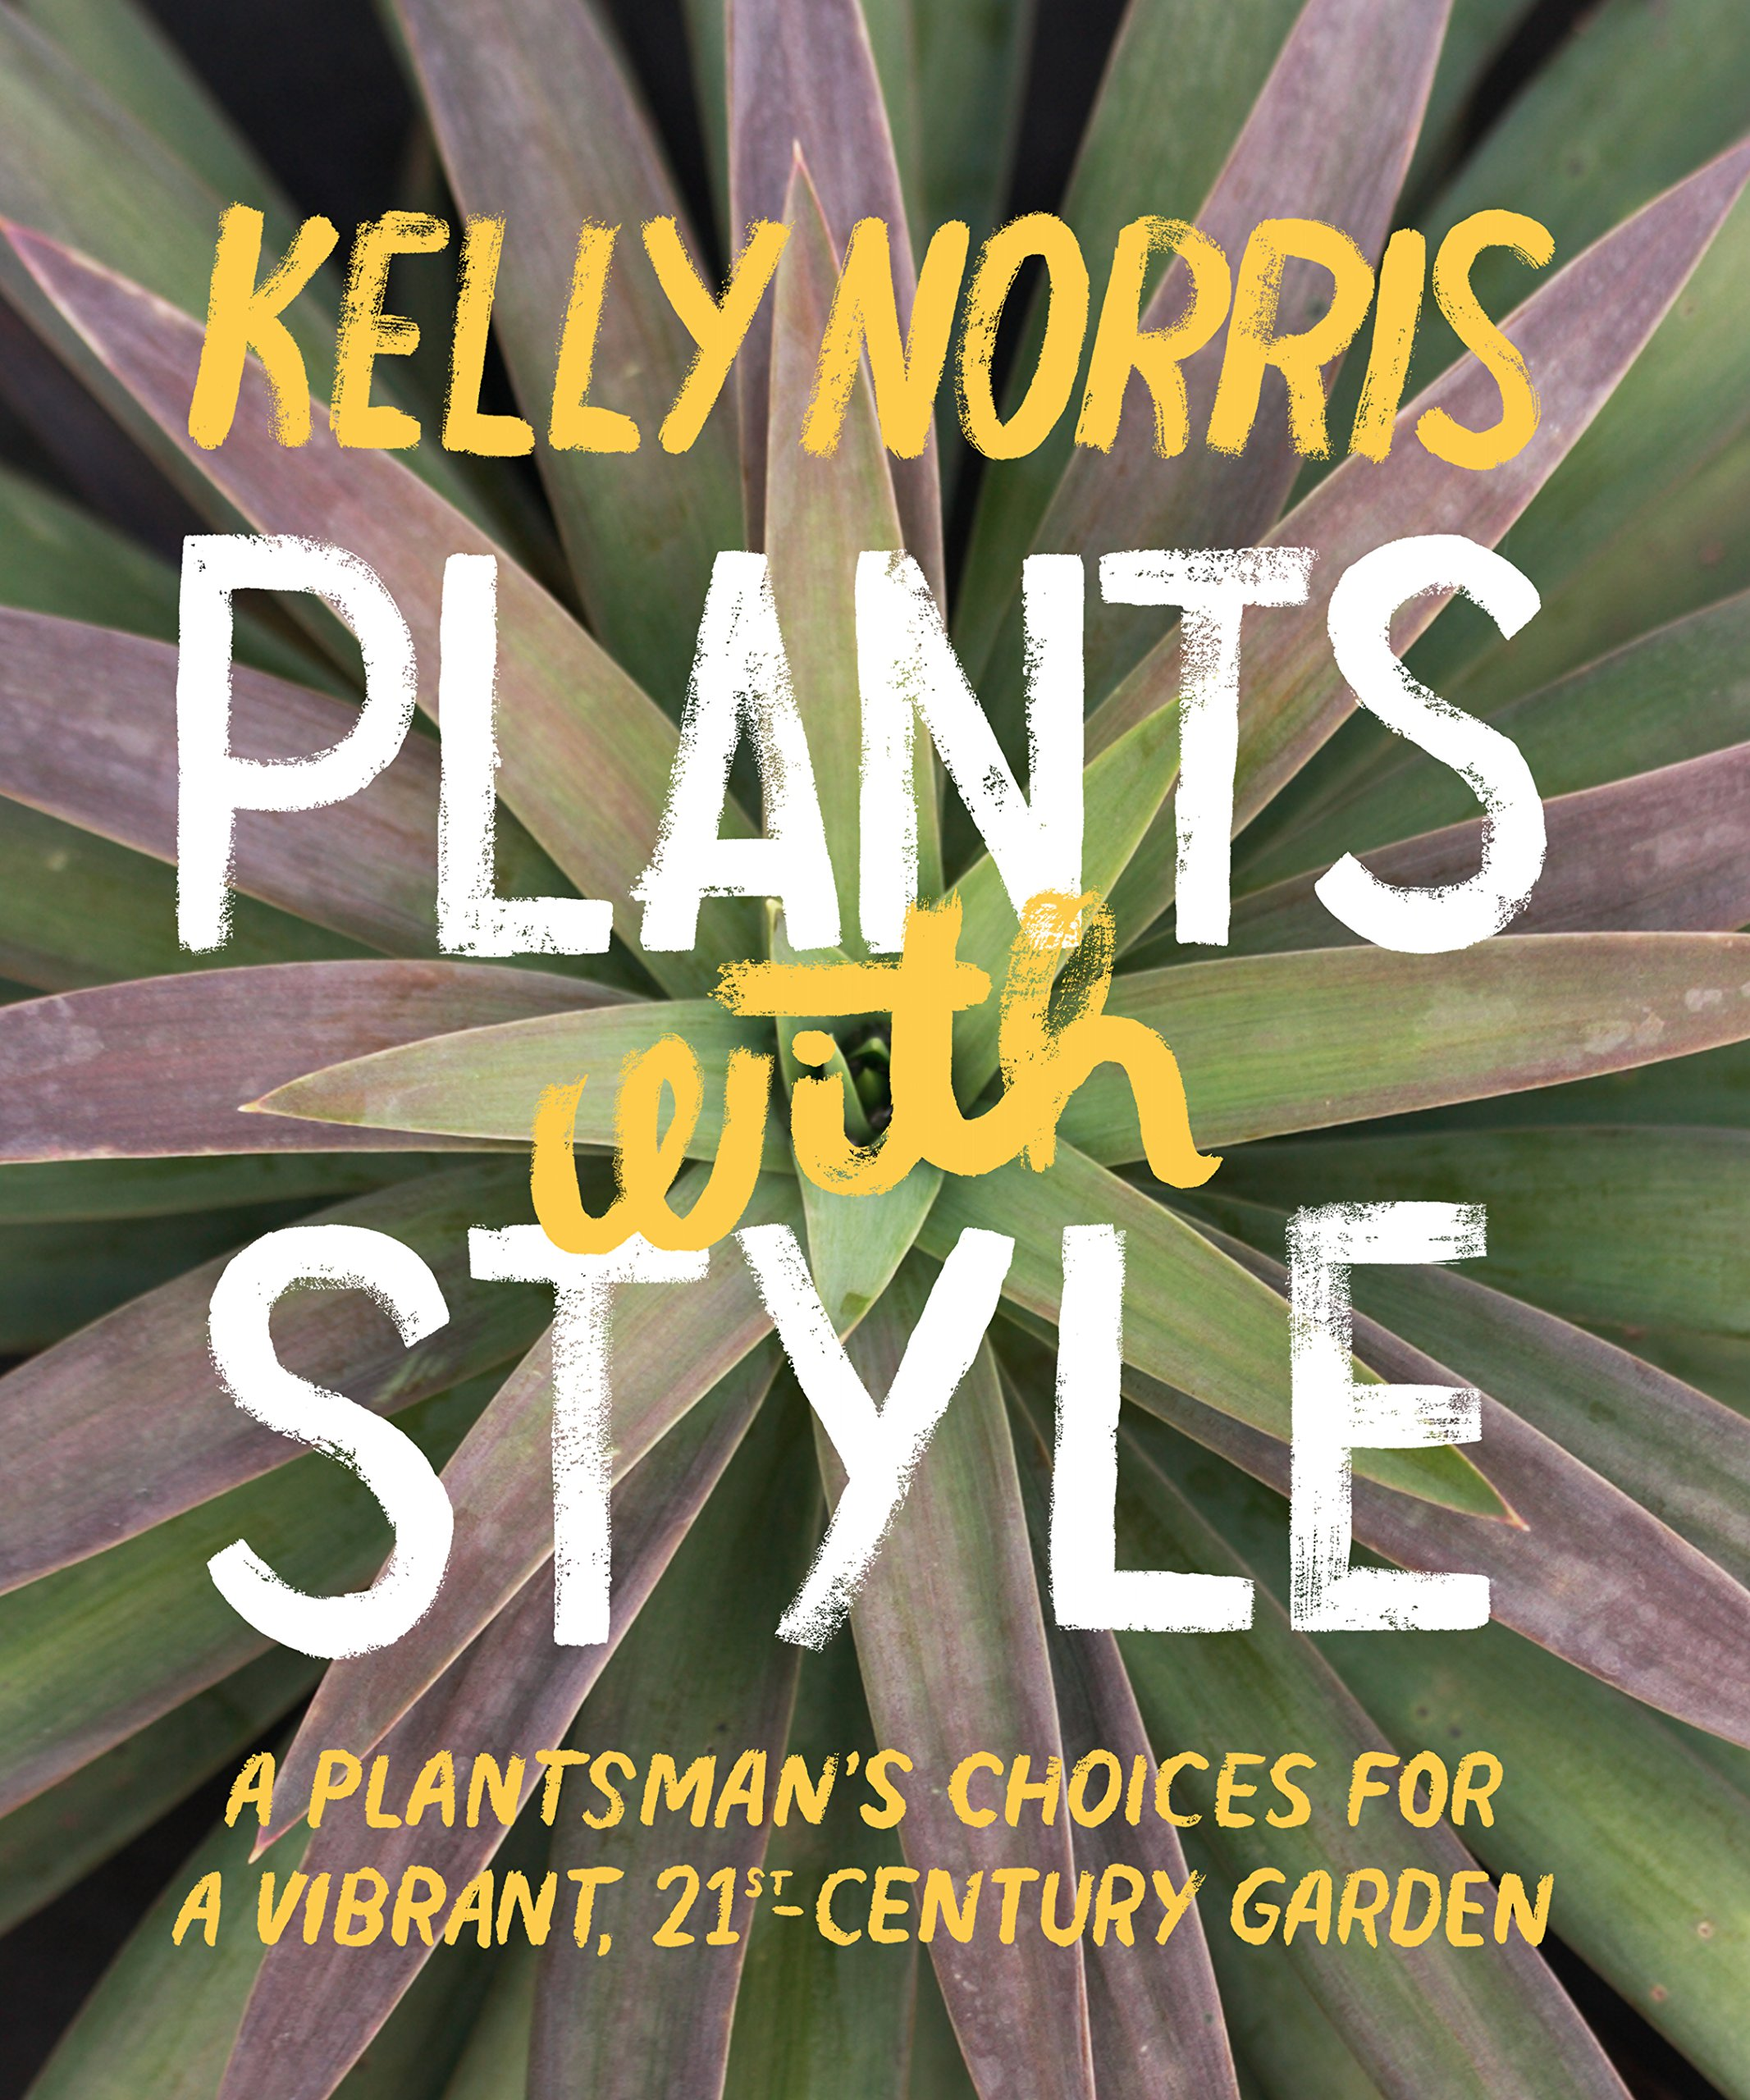 Plants with Style: A Plantsman's Choices for a Vibrant, 21st-Century Garden